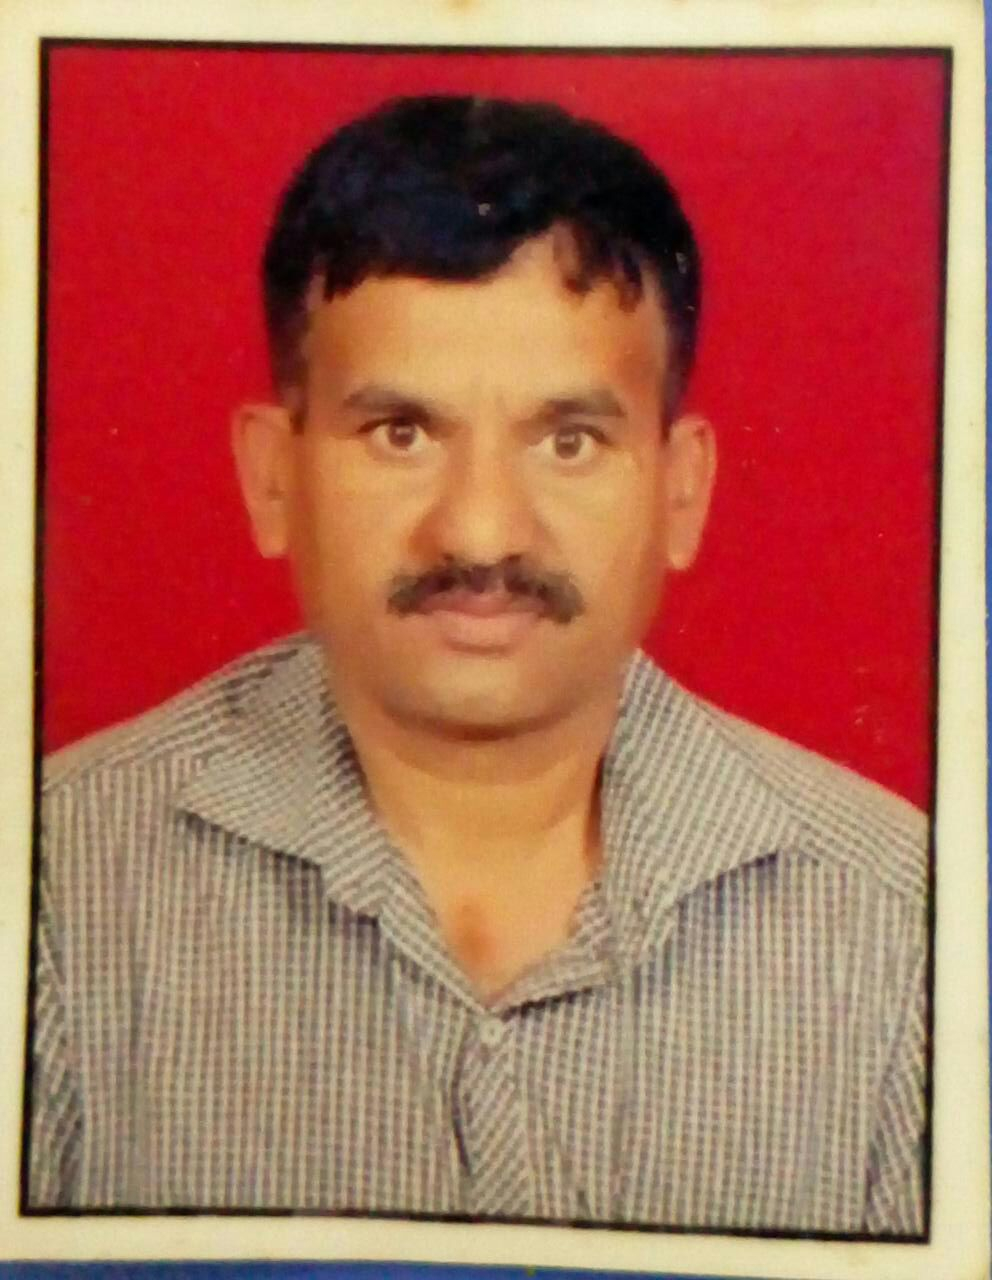 Mr. Balwant R. Chavan